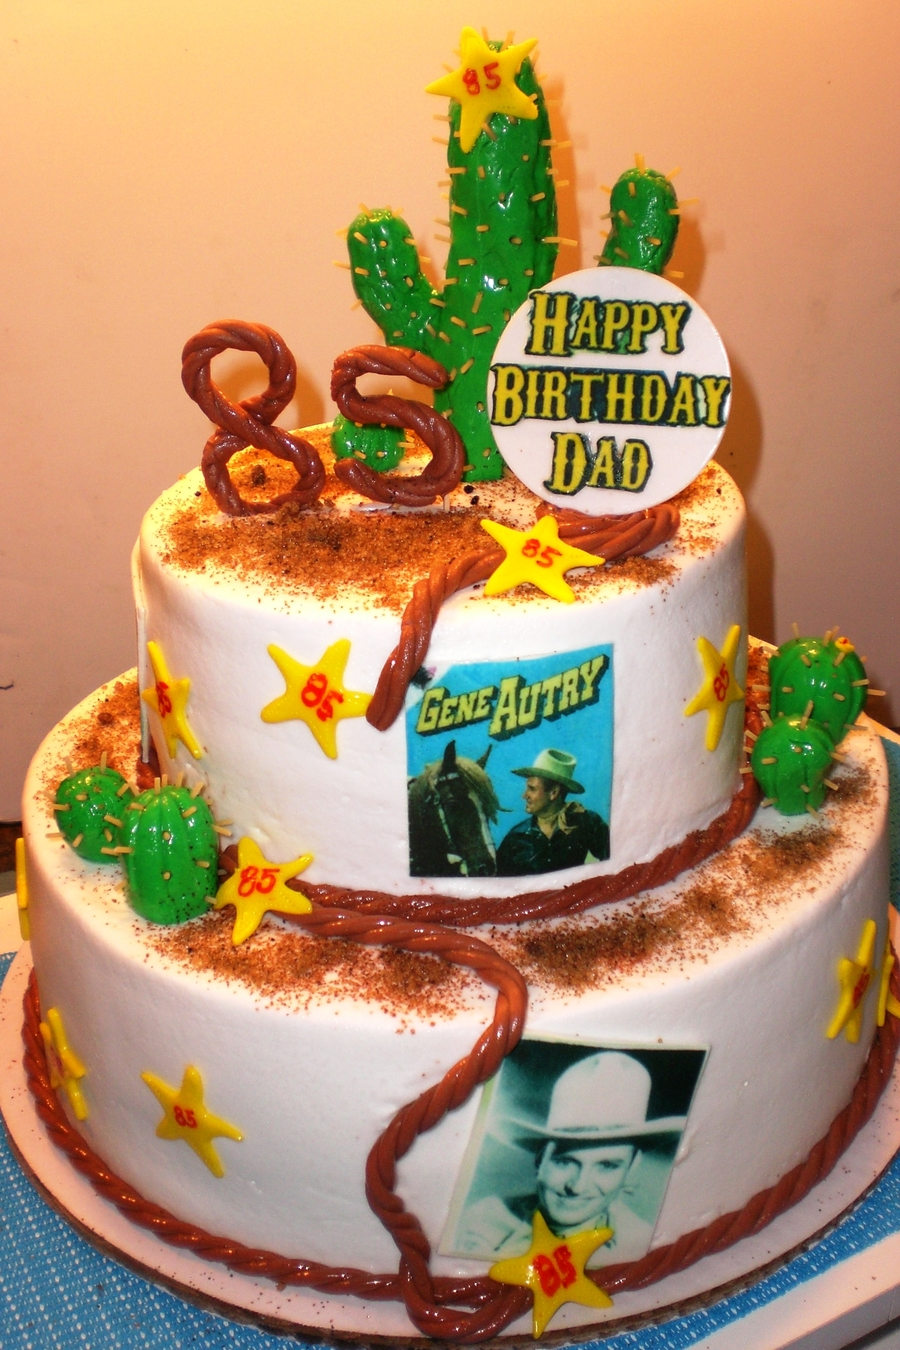 Astonishing Gene Autrey Birthday Cake Cakecentral Com Funny Birthday Cards Online Overcheapnameinfo